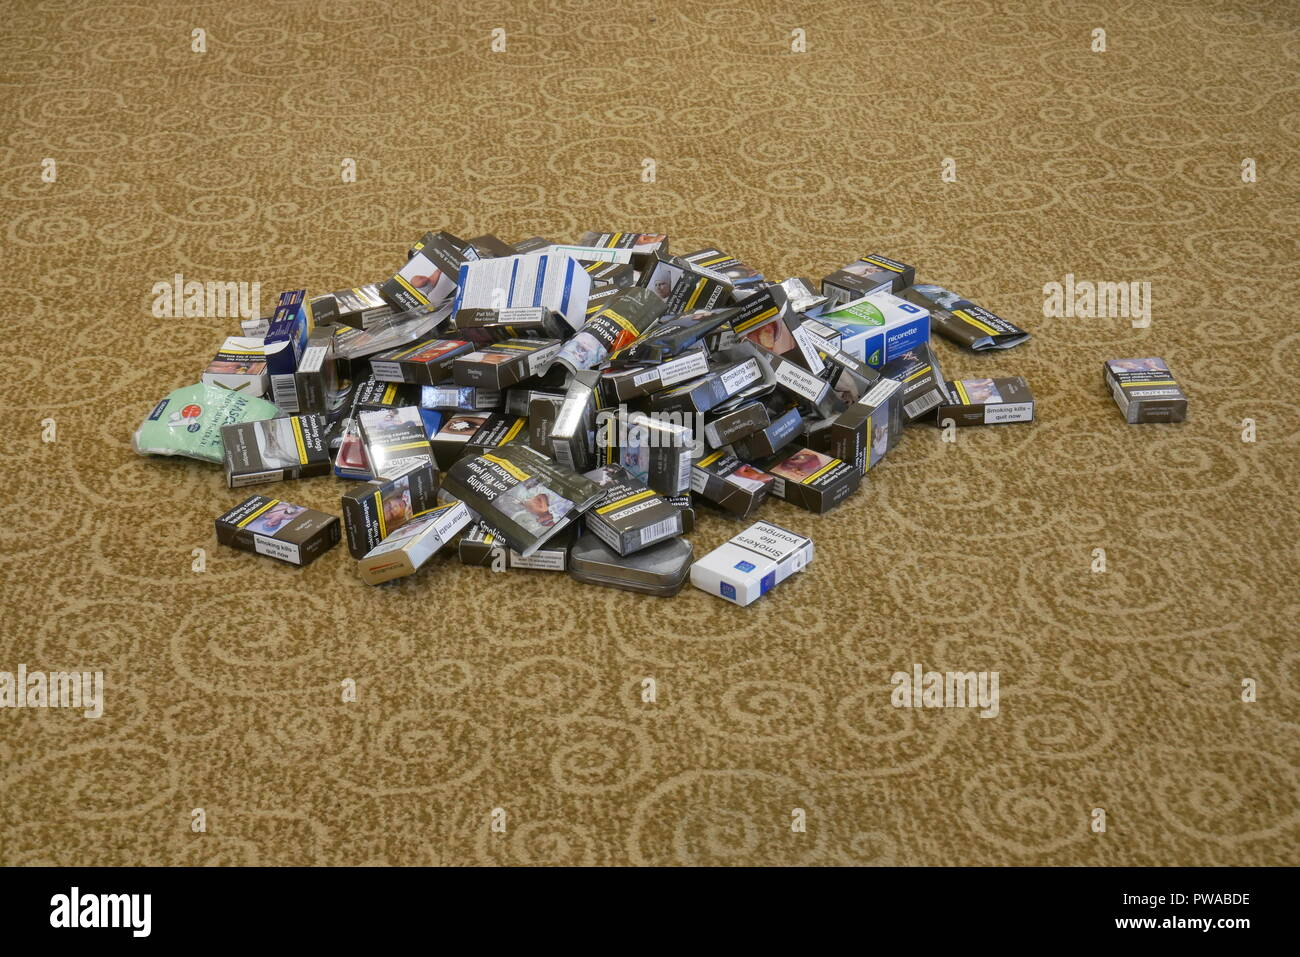 A pile of discarded nicotine delivery systems including tobacco products and Nicotine Replacement products - Stock Image